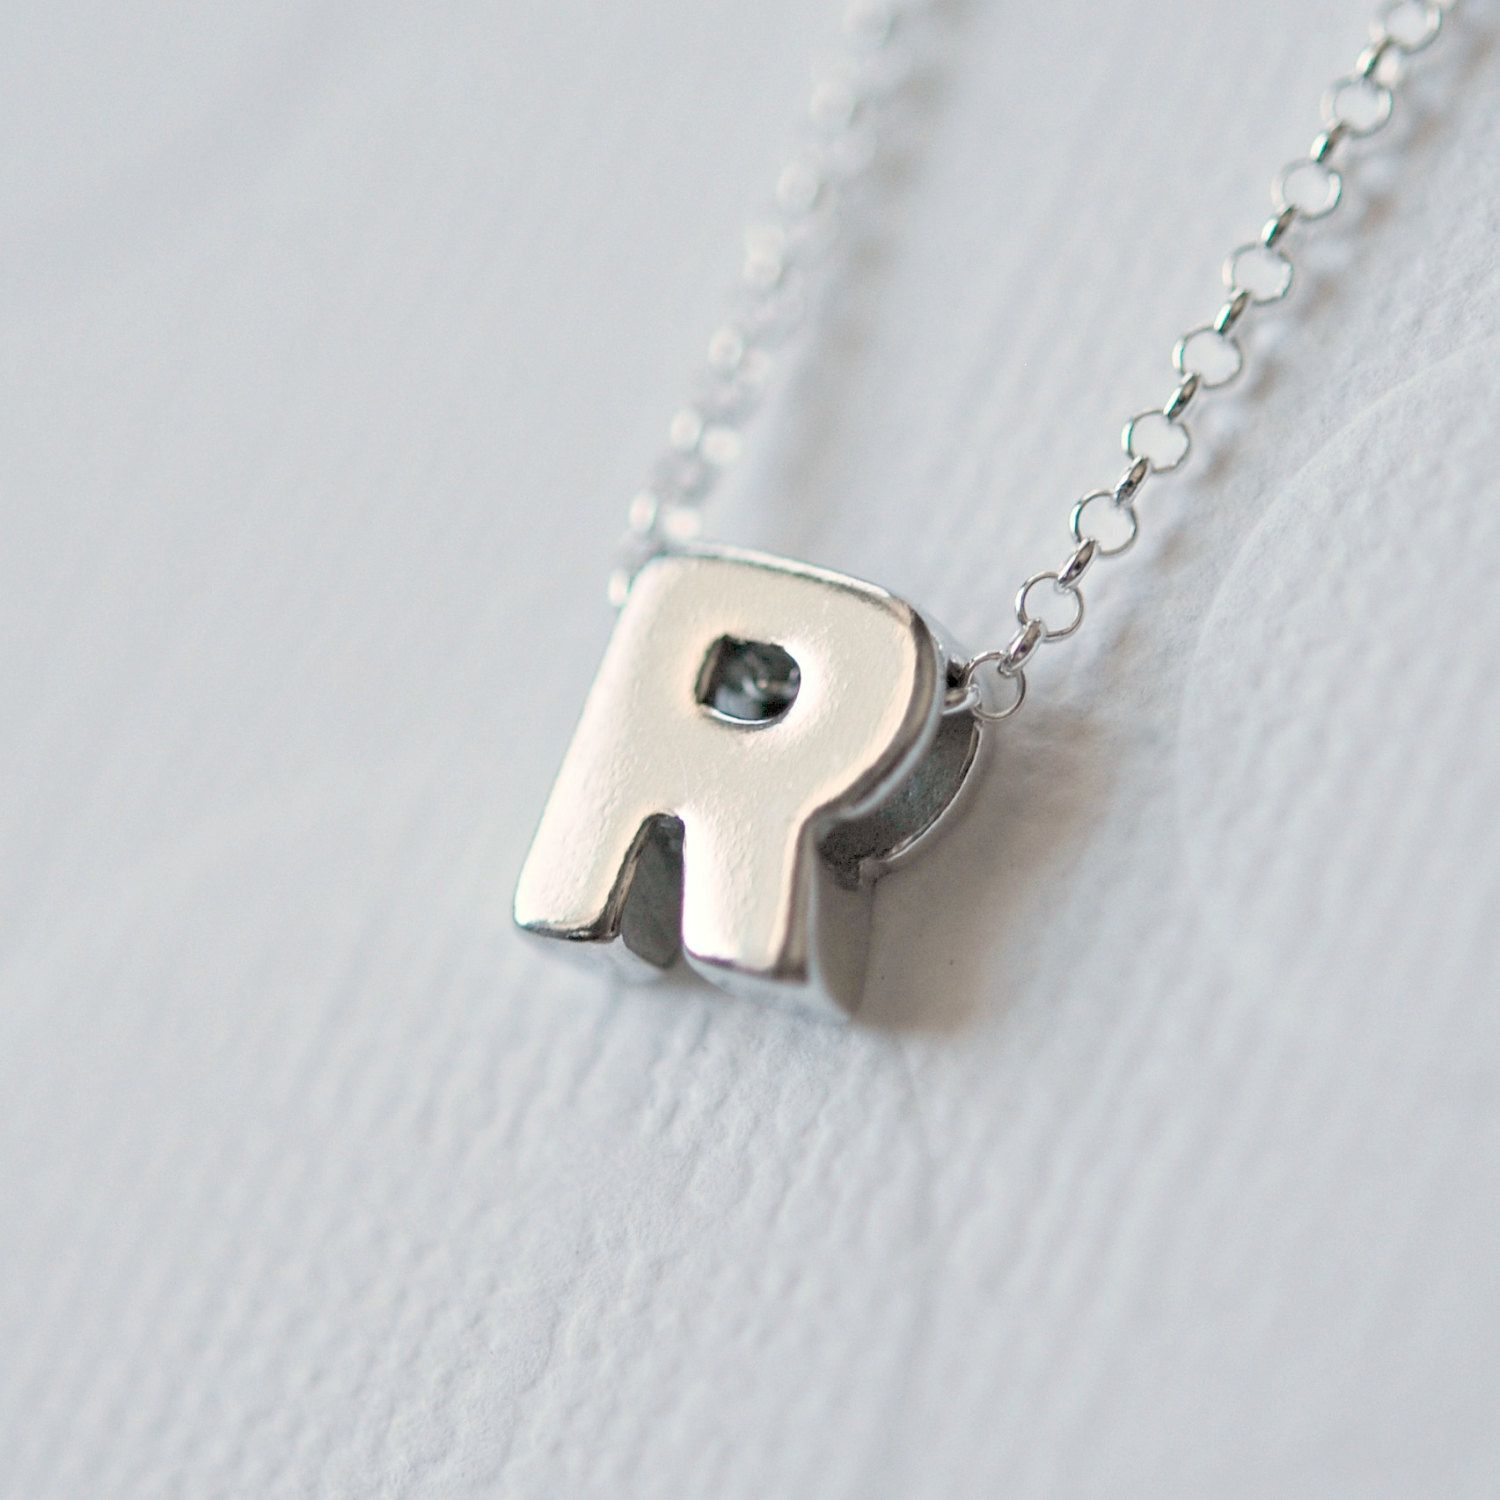 necklace pendant products custom billy silvertag initial personalized heart tag productdetail and silver with letter